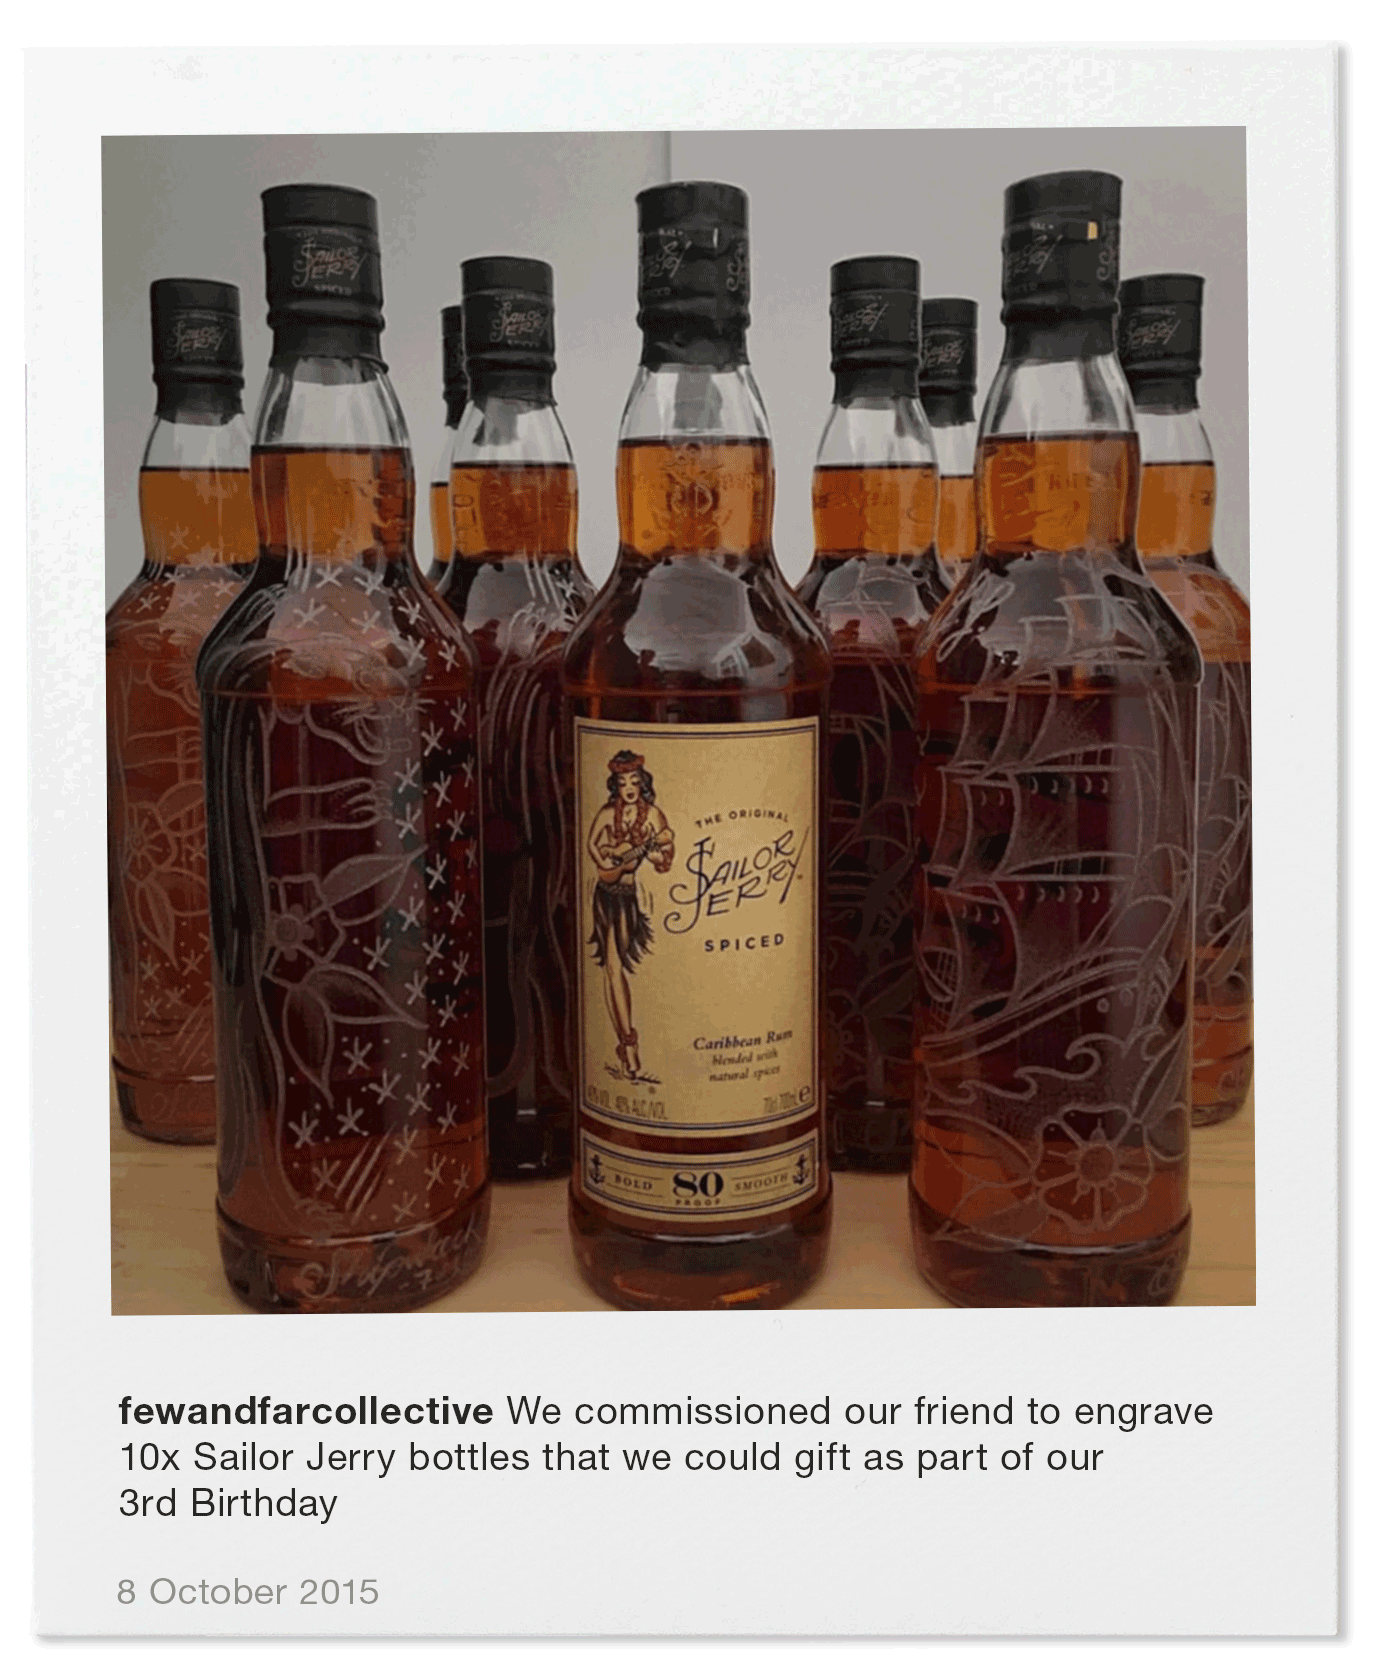 We commissioned our friend to engrave 10x Sailor Jerry bottles that we could gift as part of our 3rd Birthday